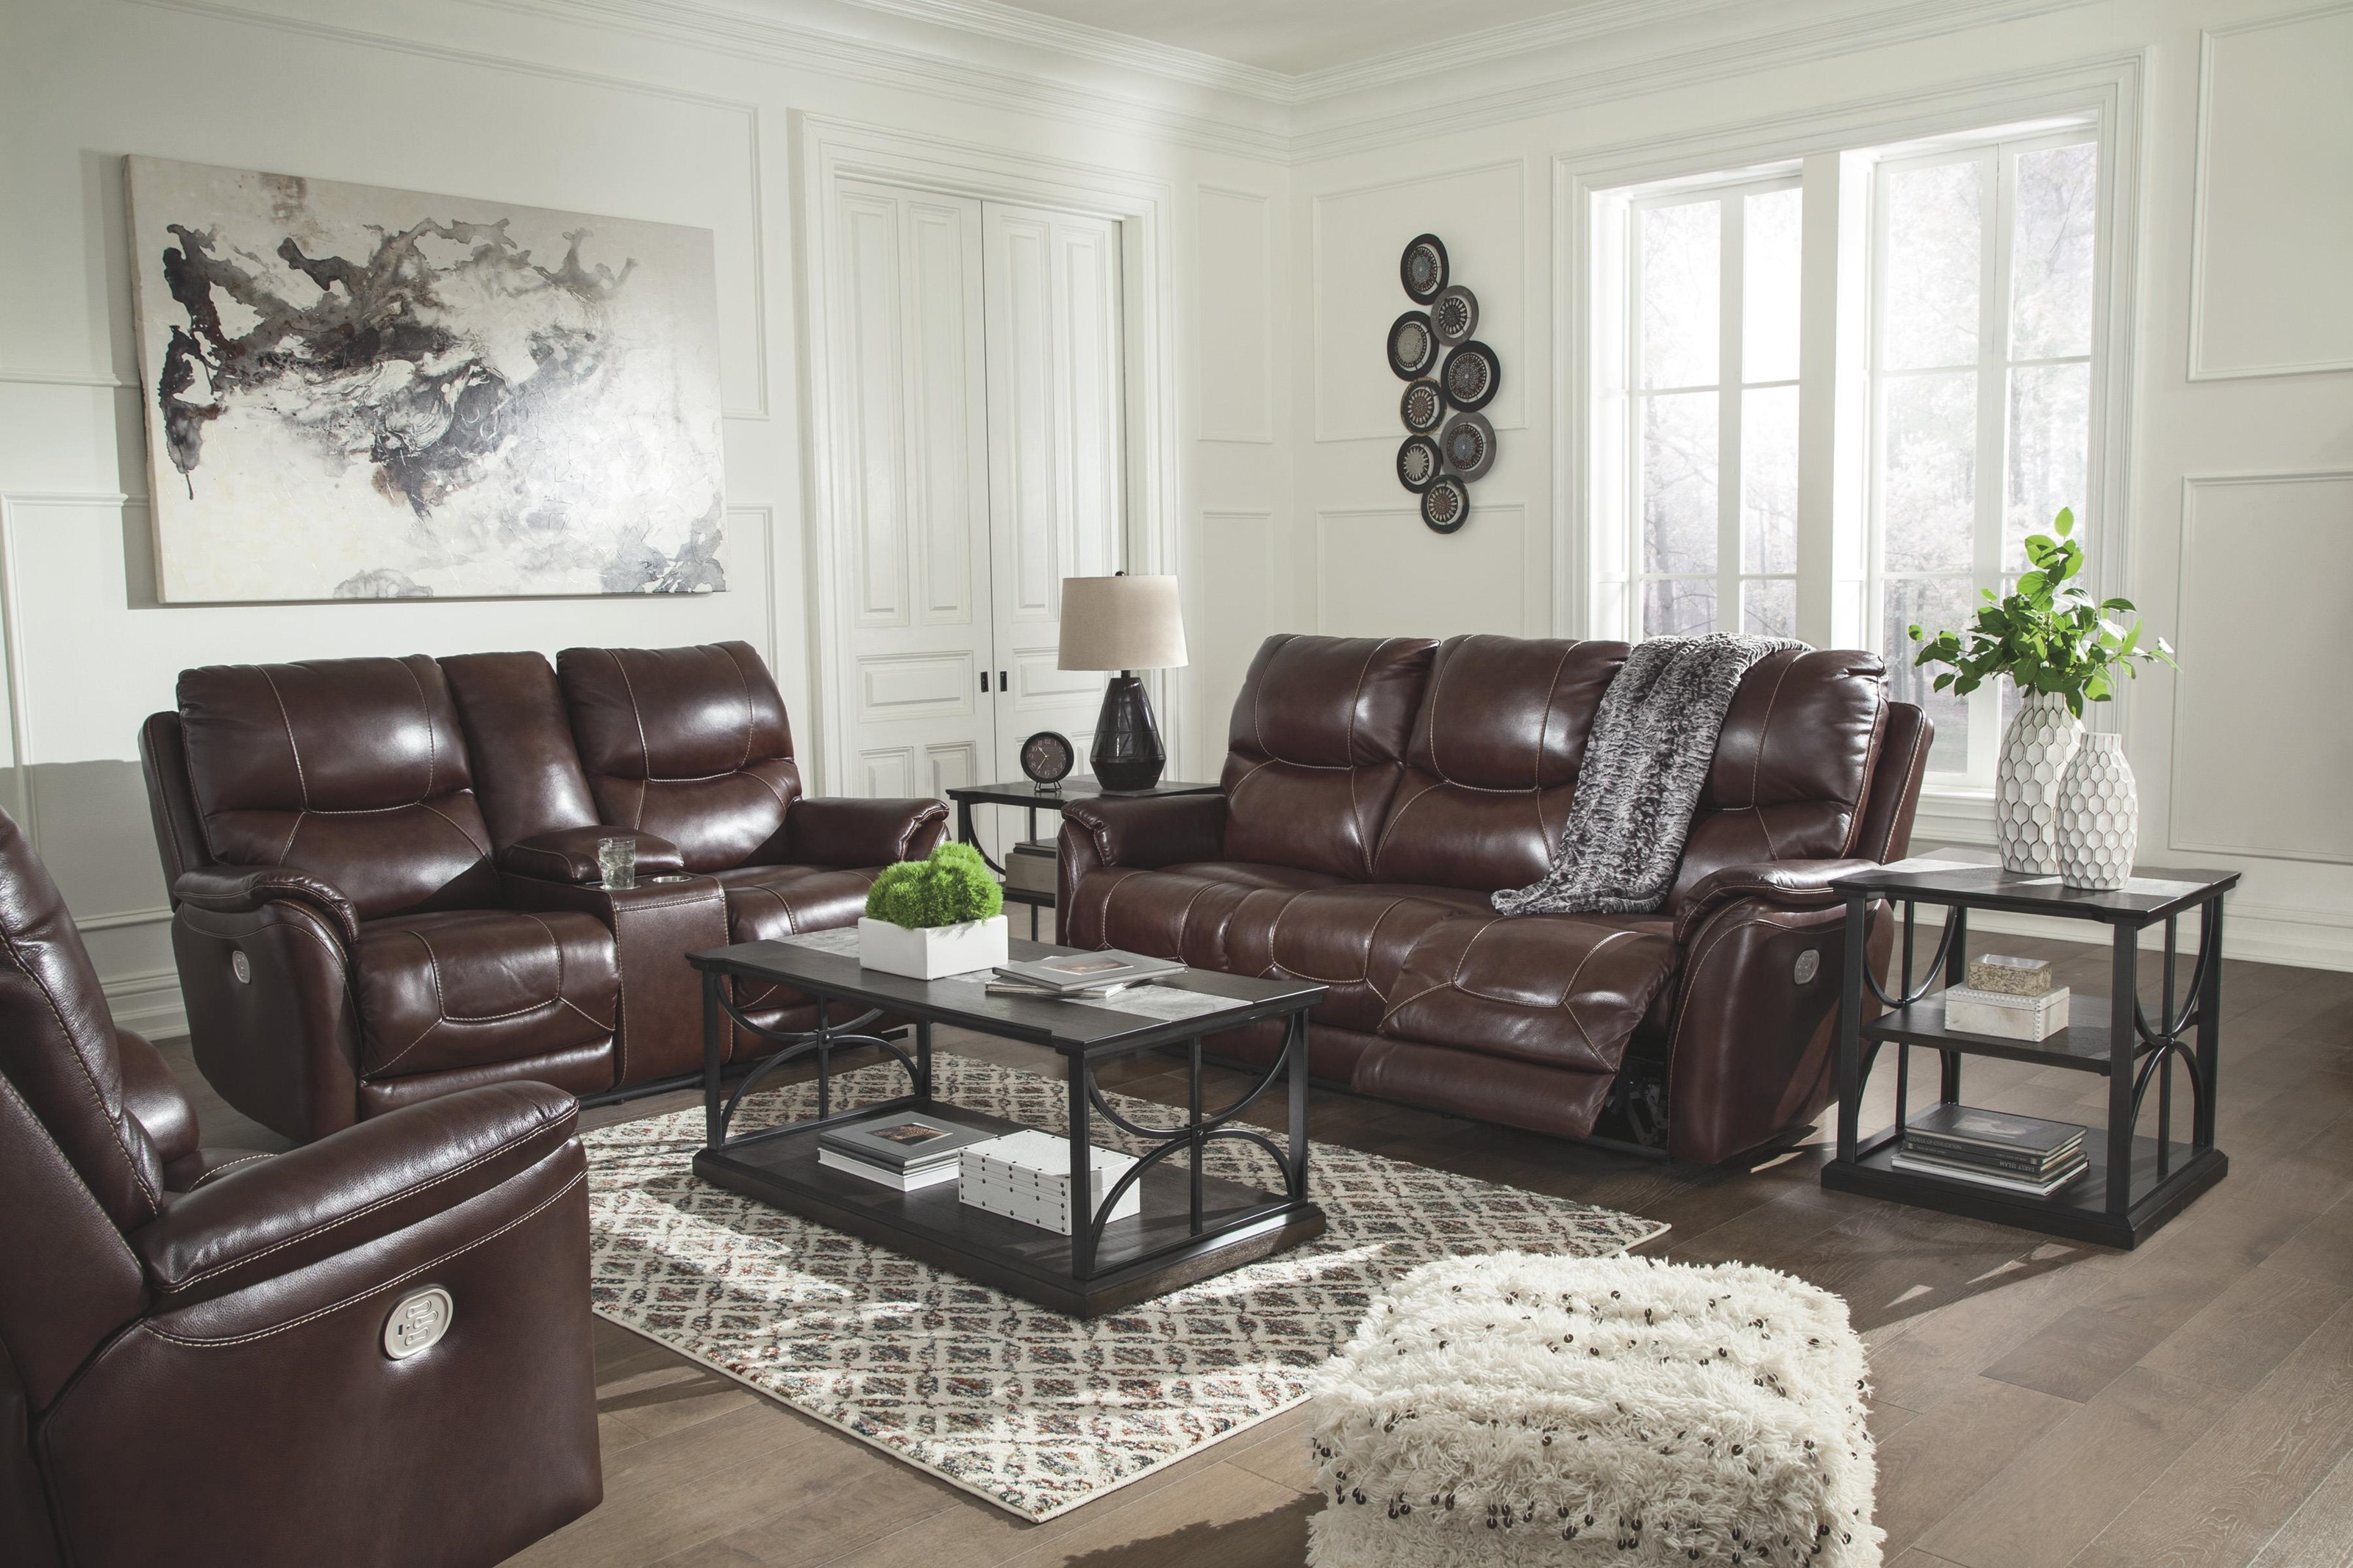 Signature Design By Ashley Dellington U1150515 18 13 Power Reclining Sofa With Adjustable Headrest Power Reclining Loveseat With Console And Adjustable Headrest And Power Recliner With Adjustable Headrest Set Sam Levitz Furniture